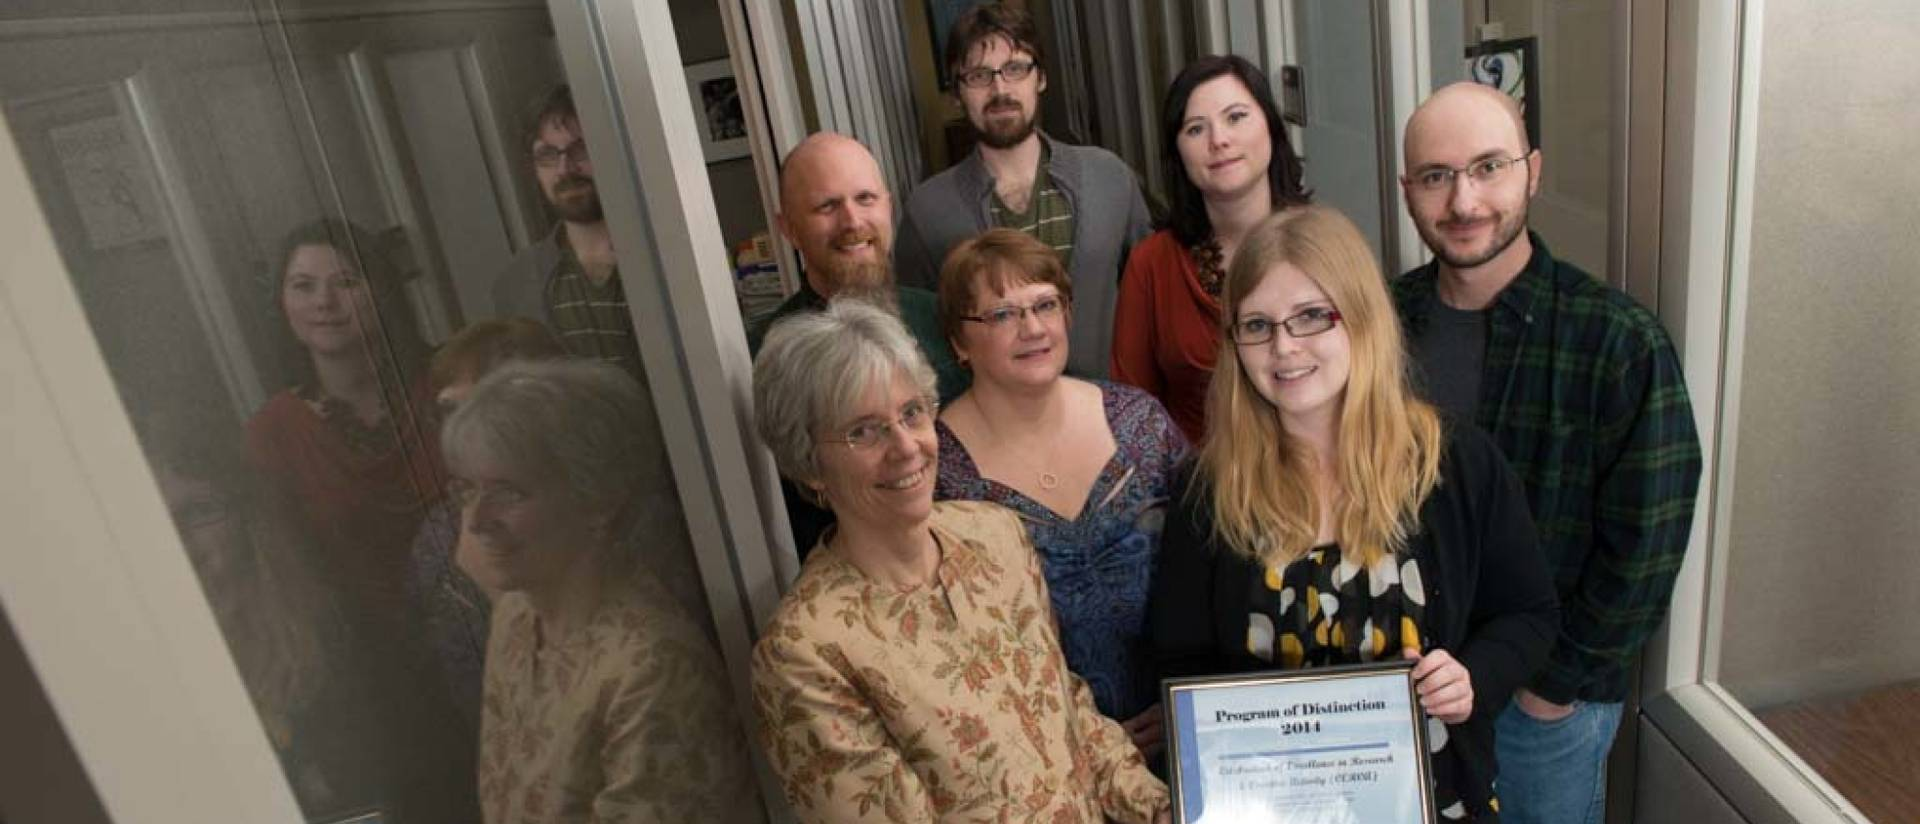 (left to right, front row), Karen Havholm, Ann Statz, business manager, Carissa Beckwith, office assistant, Chris Zimmerman, graduate assistant (left to right, back row), Jeremy Miner, Erik Williams, graduate assistant, Heather Johnson-Schmitz